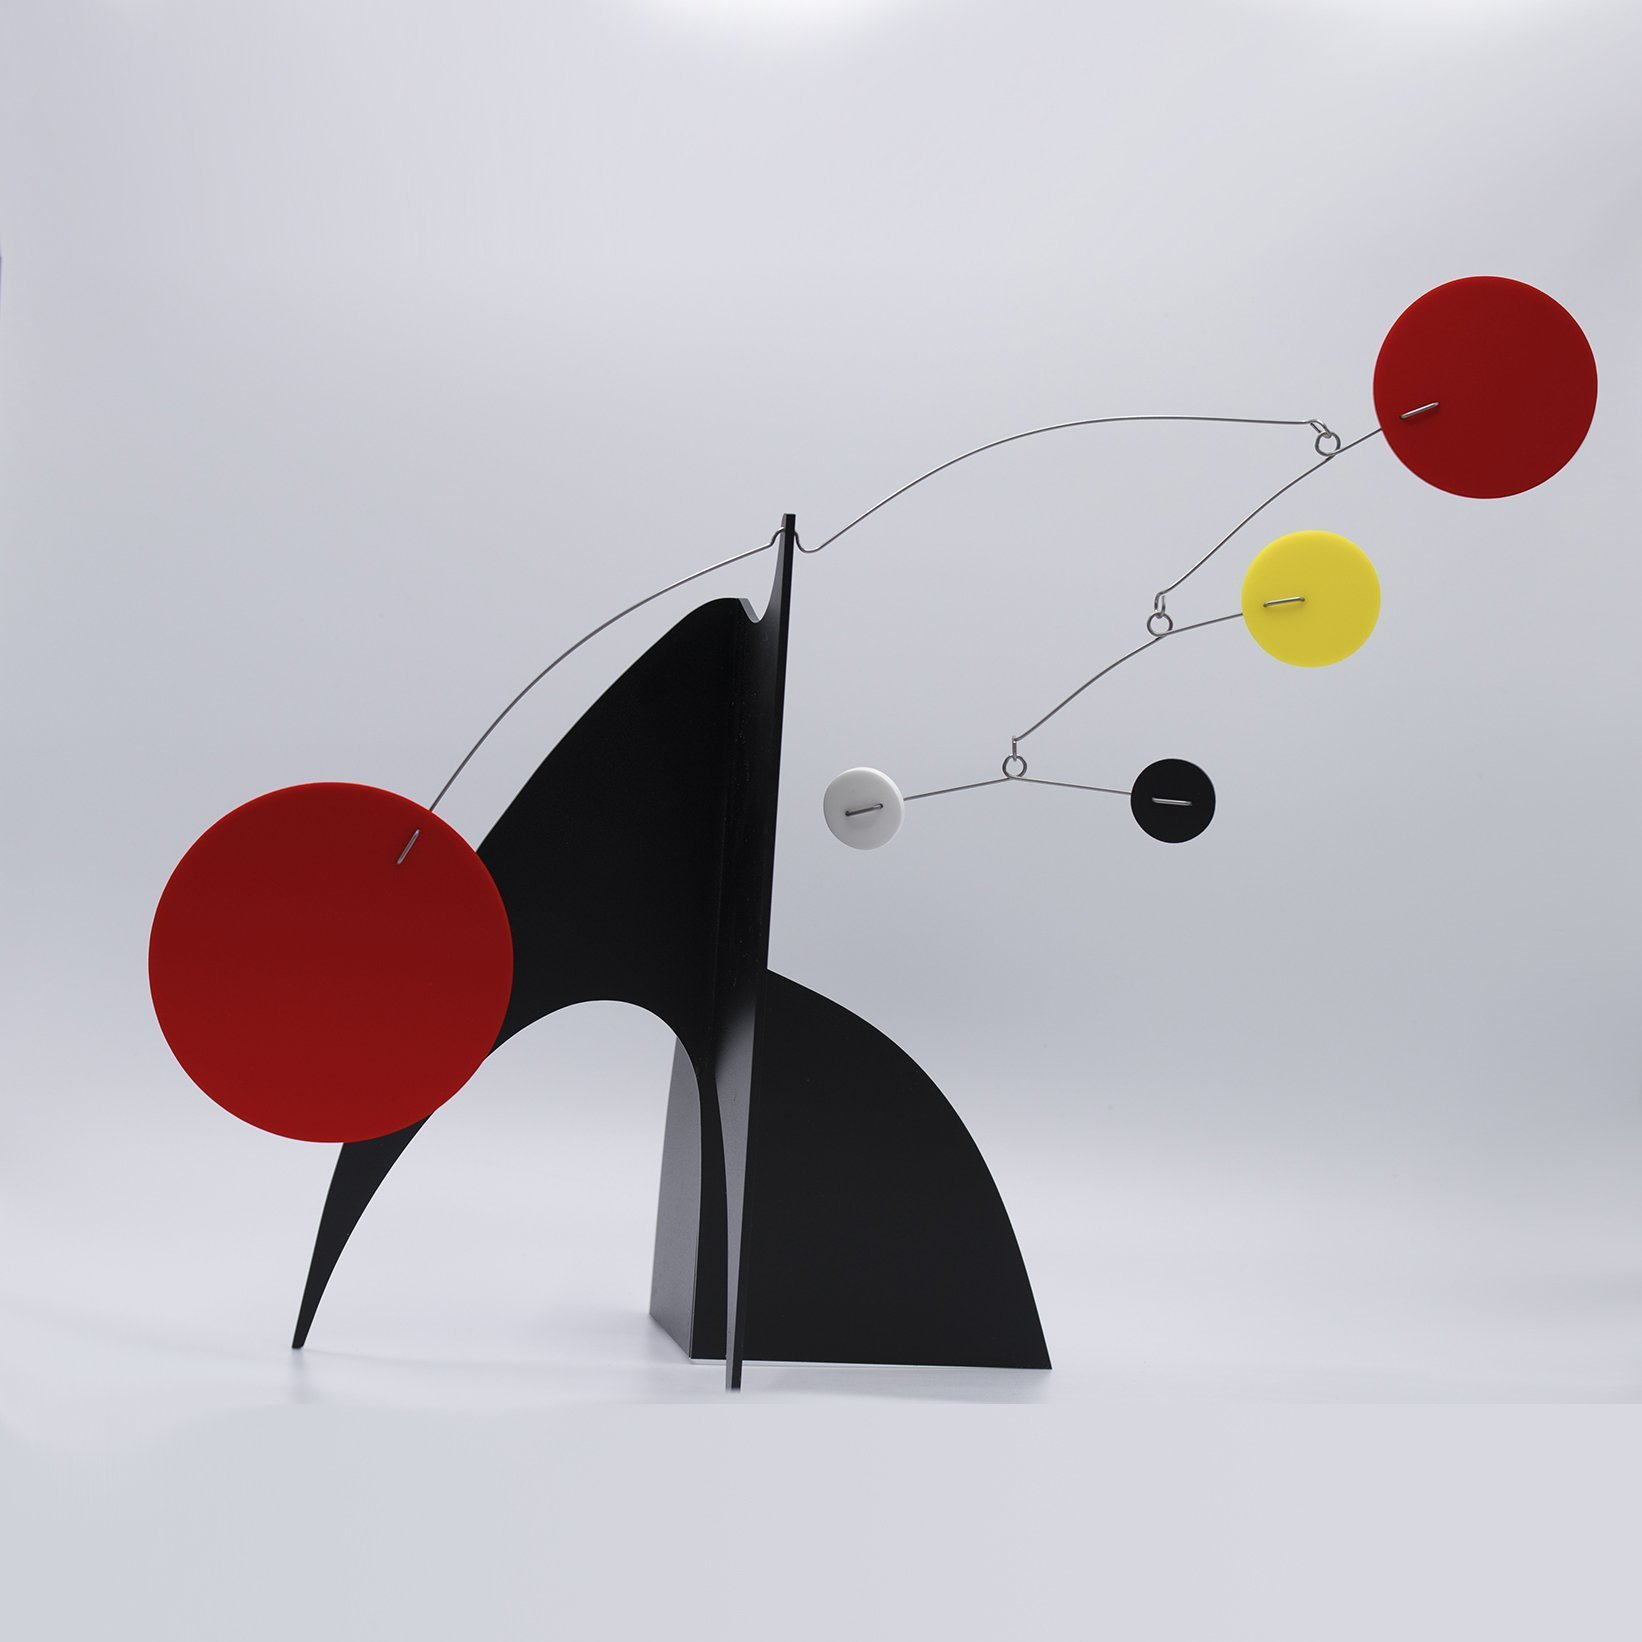 Gorgeous Moderne Art Stabile by Atomic Mobiles - a mobile you display on your coffee table, shelf, desk, or counter top - Inspired by Alexander Calder and Mid Century Modern Retro Style